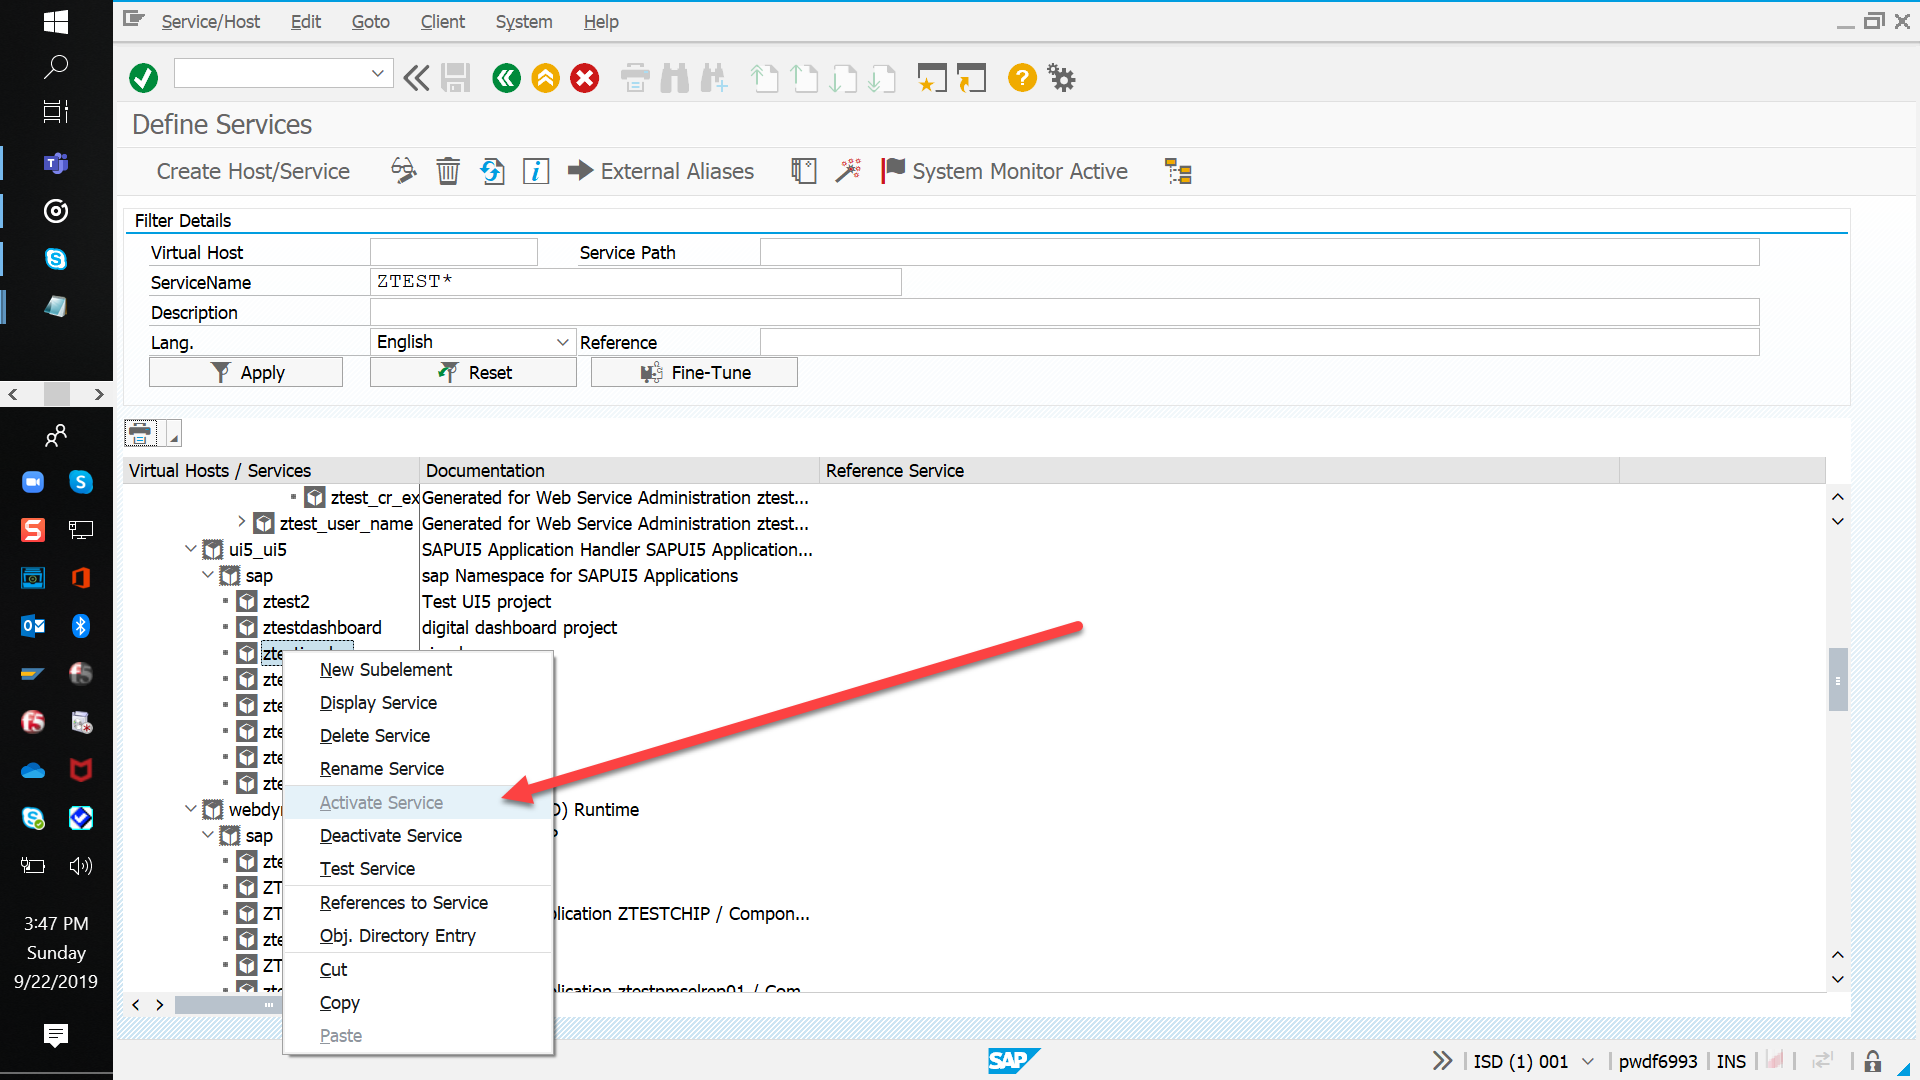 Activate Services for Fiori Launchpad